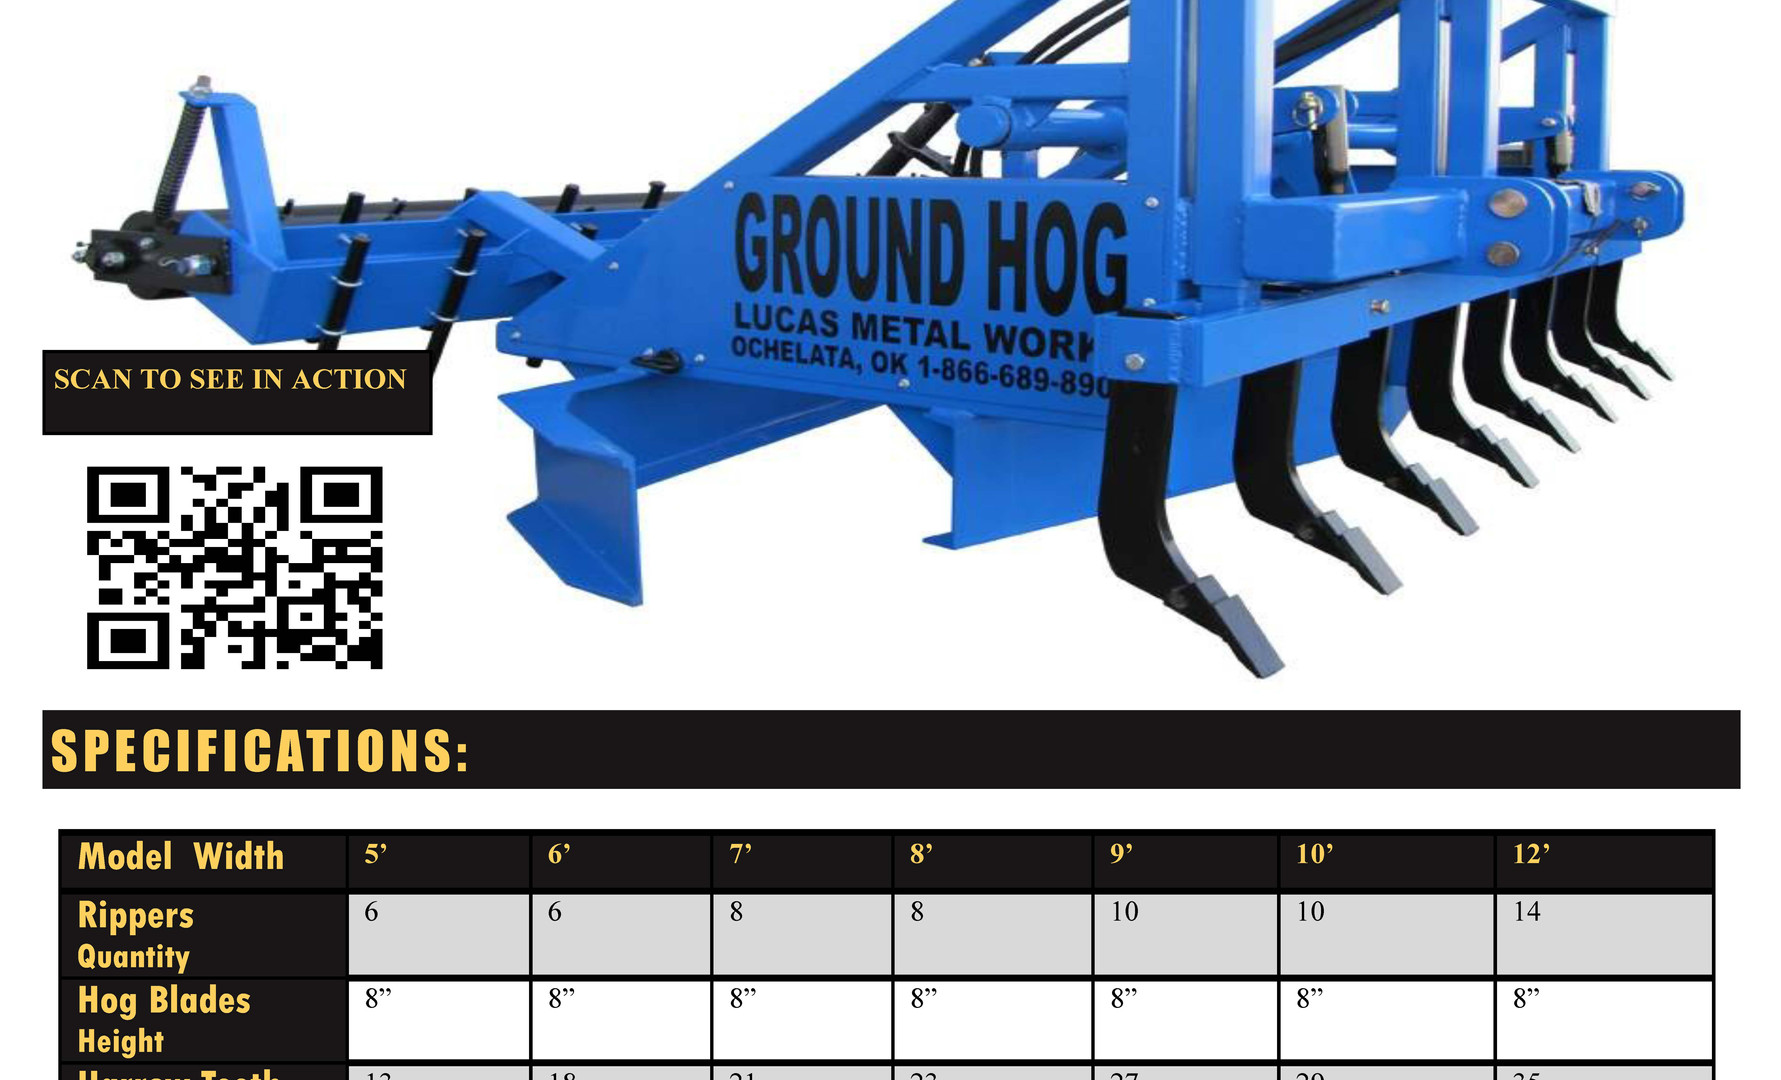 Ground Hog brochure